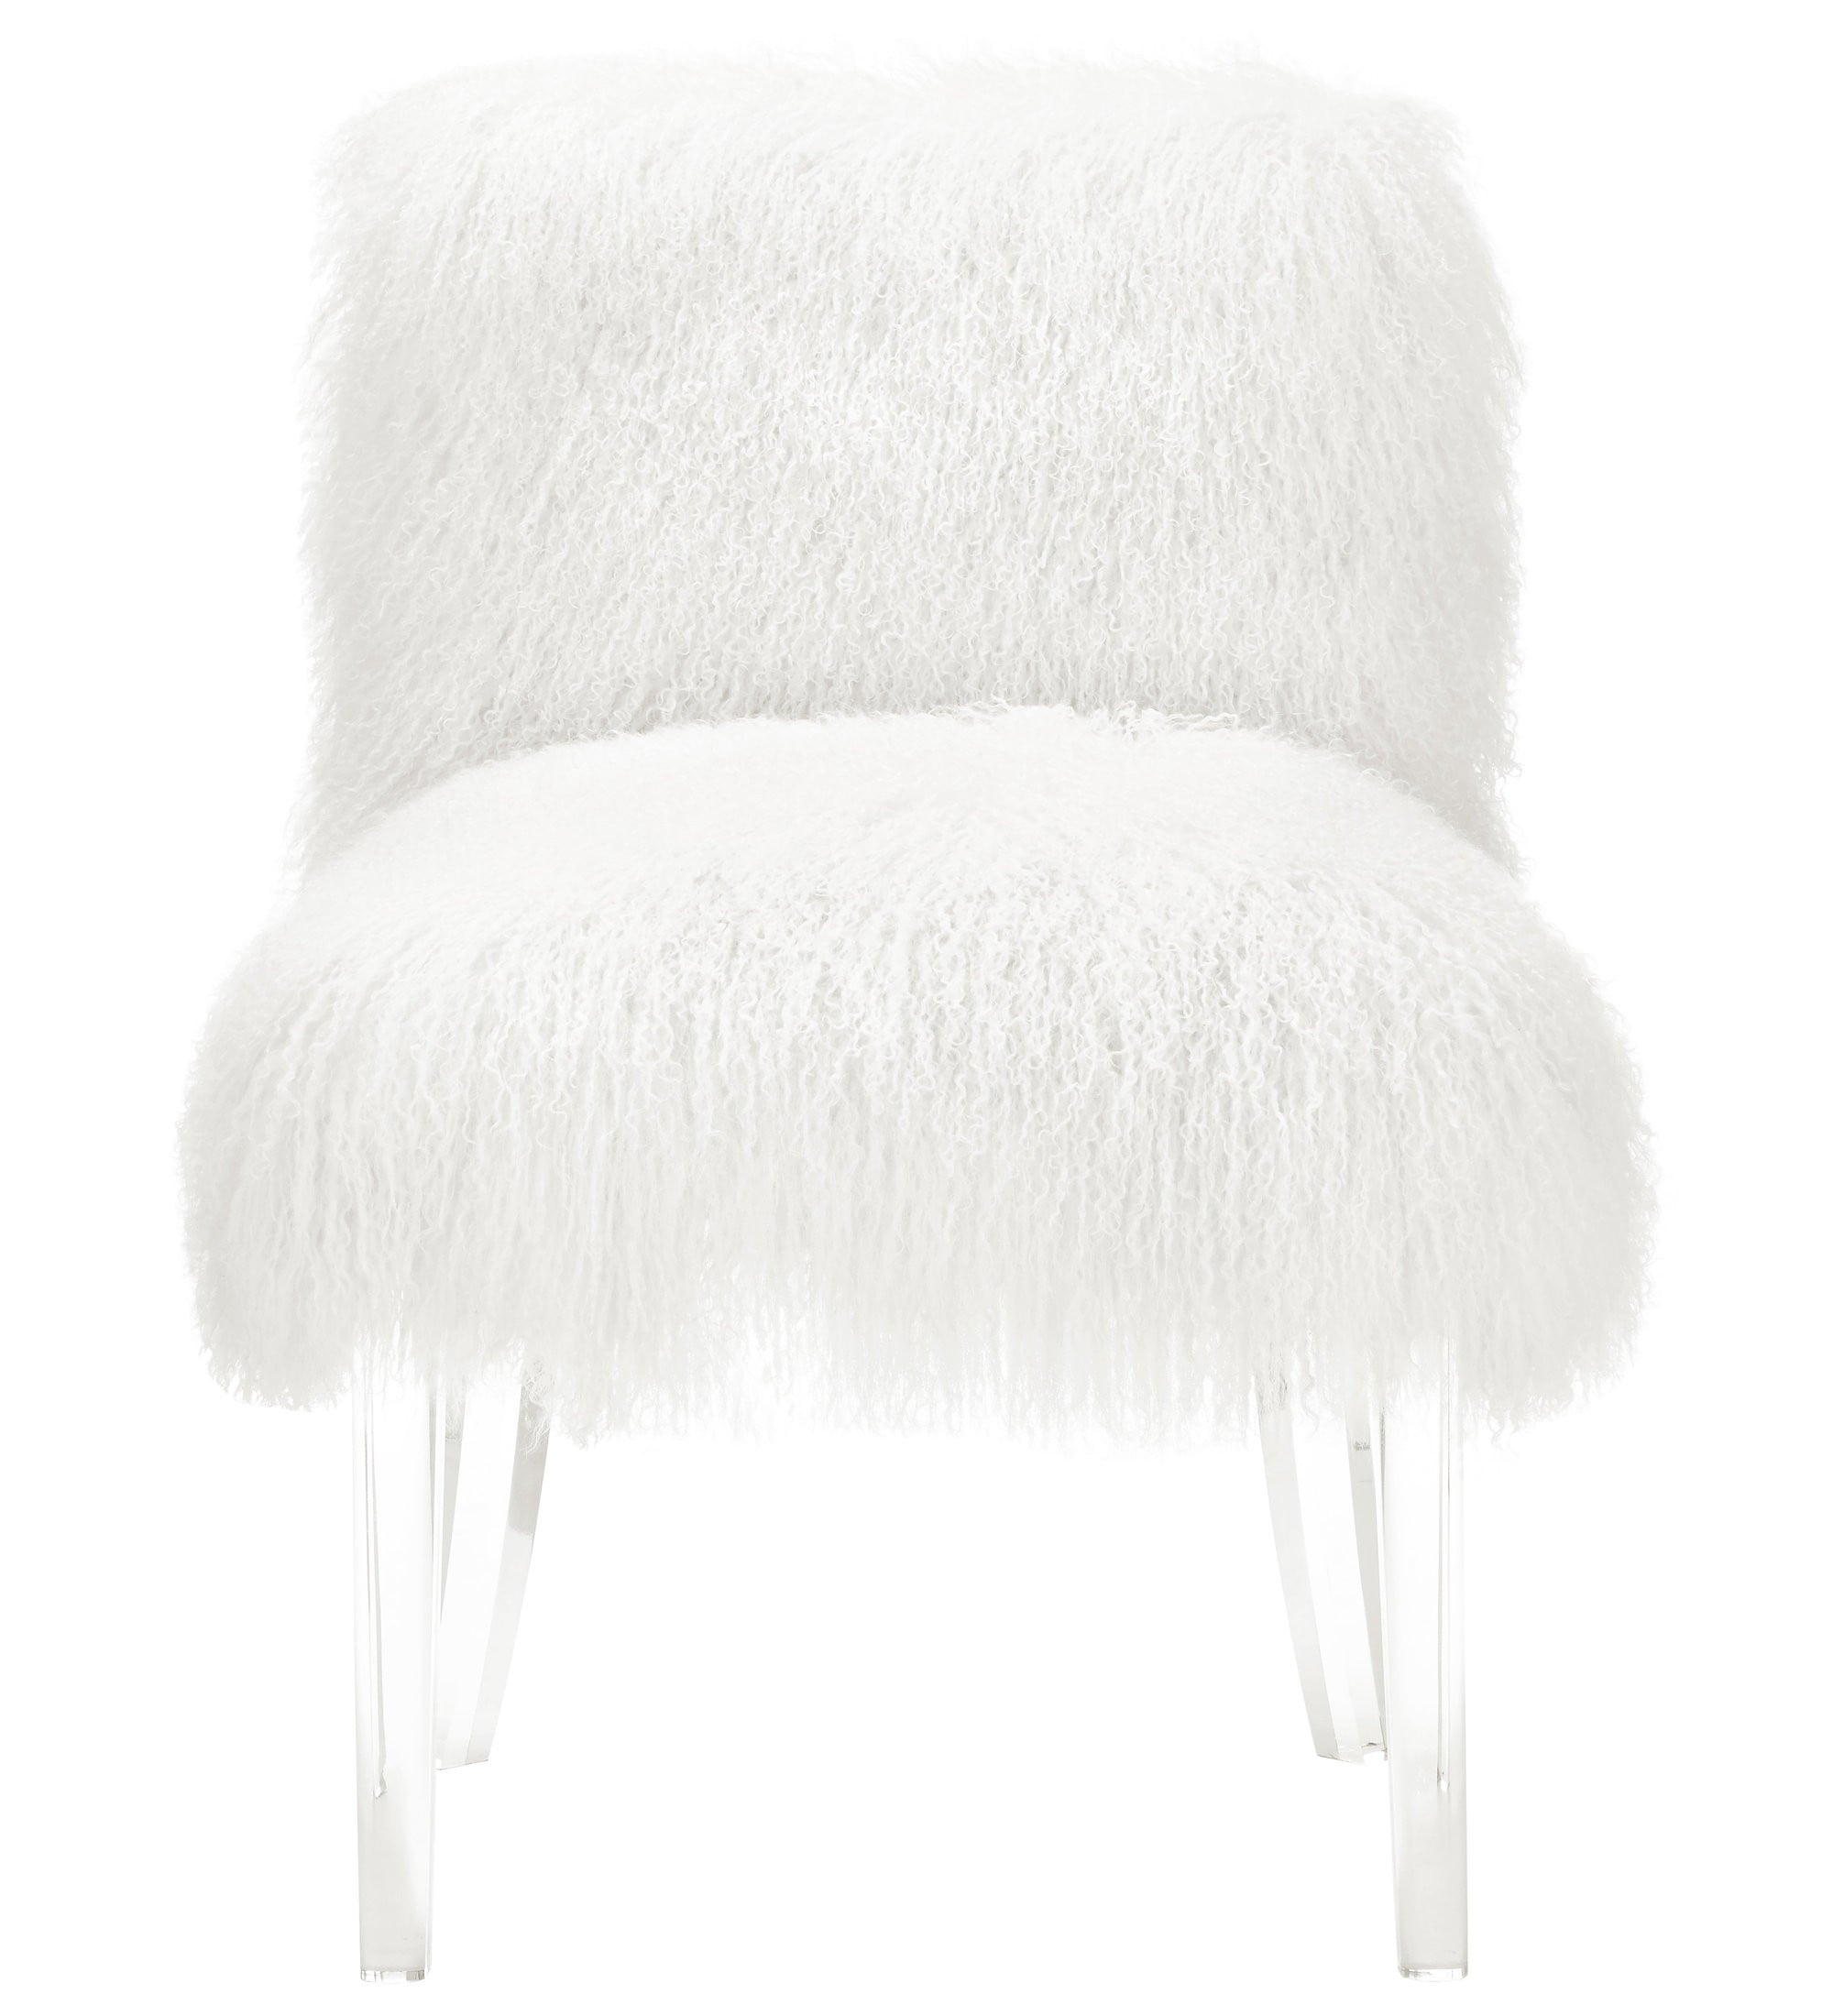 Sophie White Sheepskin Lucite Chair From Tov Tov A75